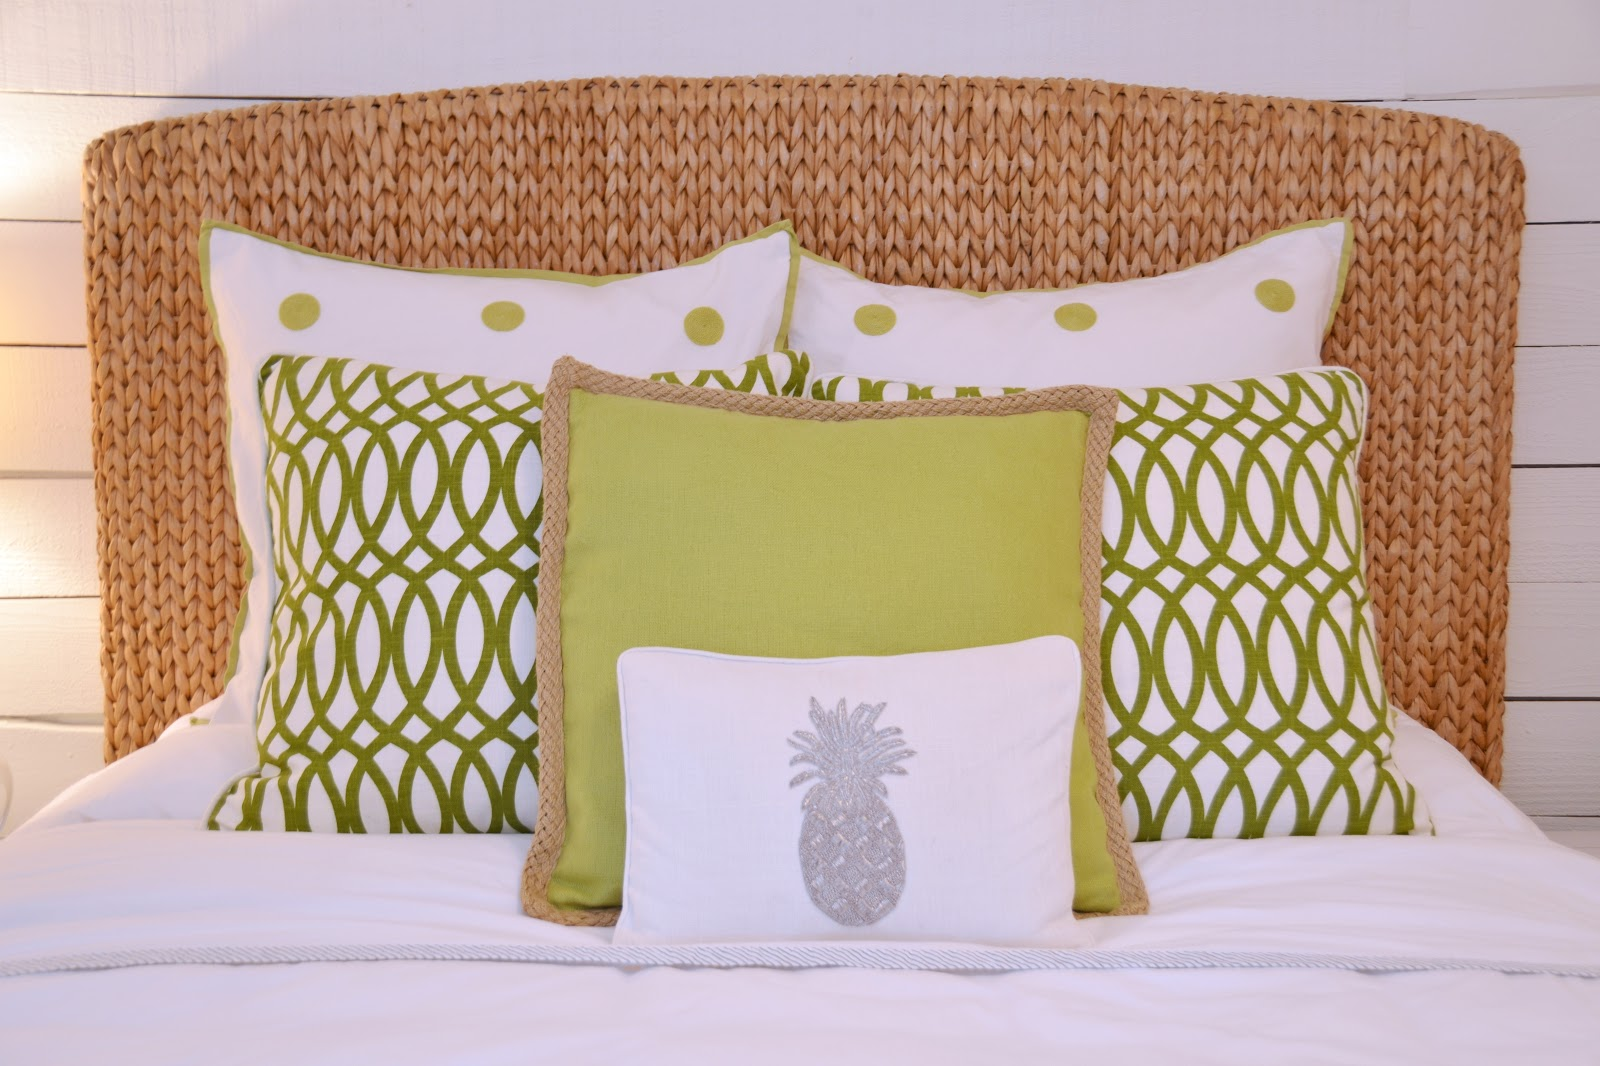 Rattan Headboards | Seagrass Headboard King | Wicker Peacock Headboard